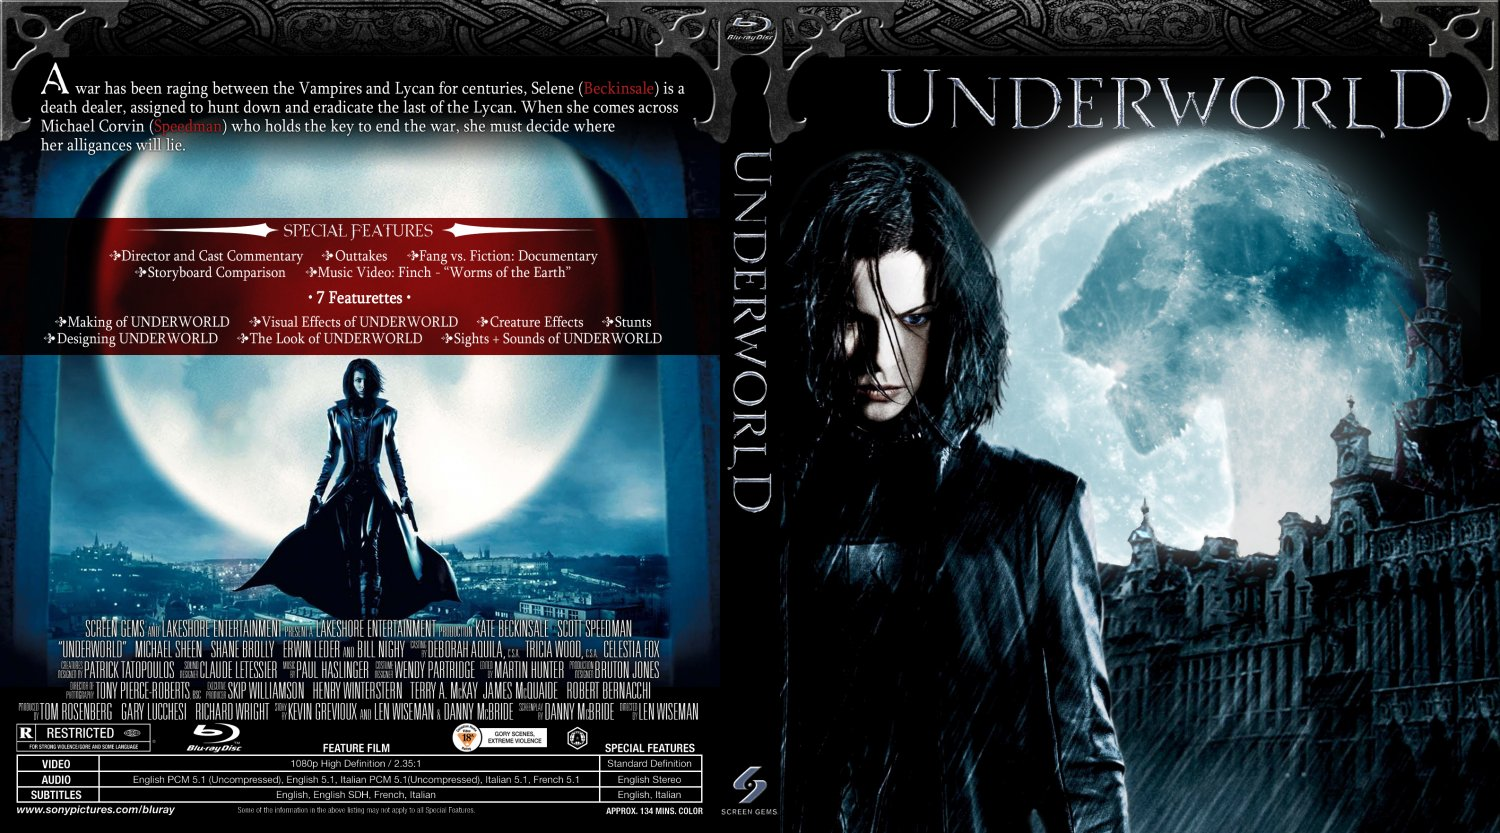 underworld movie blu ray custom covers underworld1blu. Black Bedroom Furniture Sets. Home Design Ideas